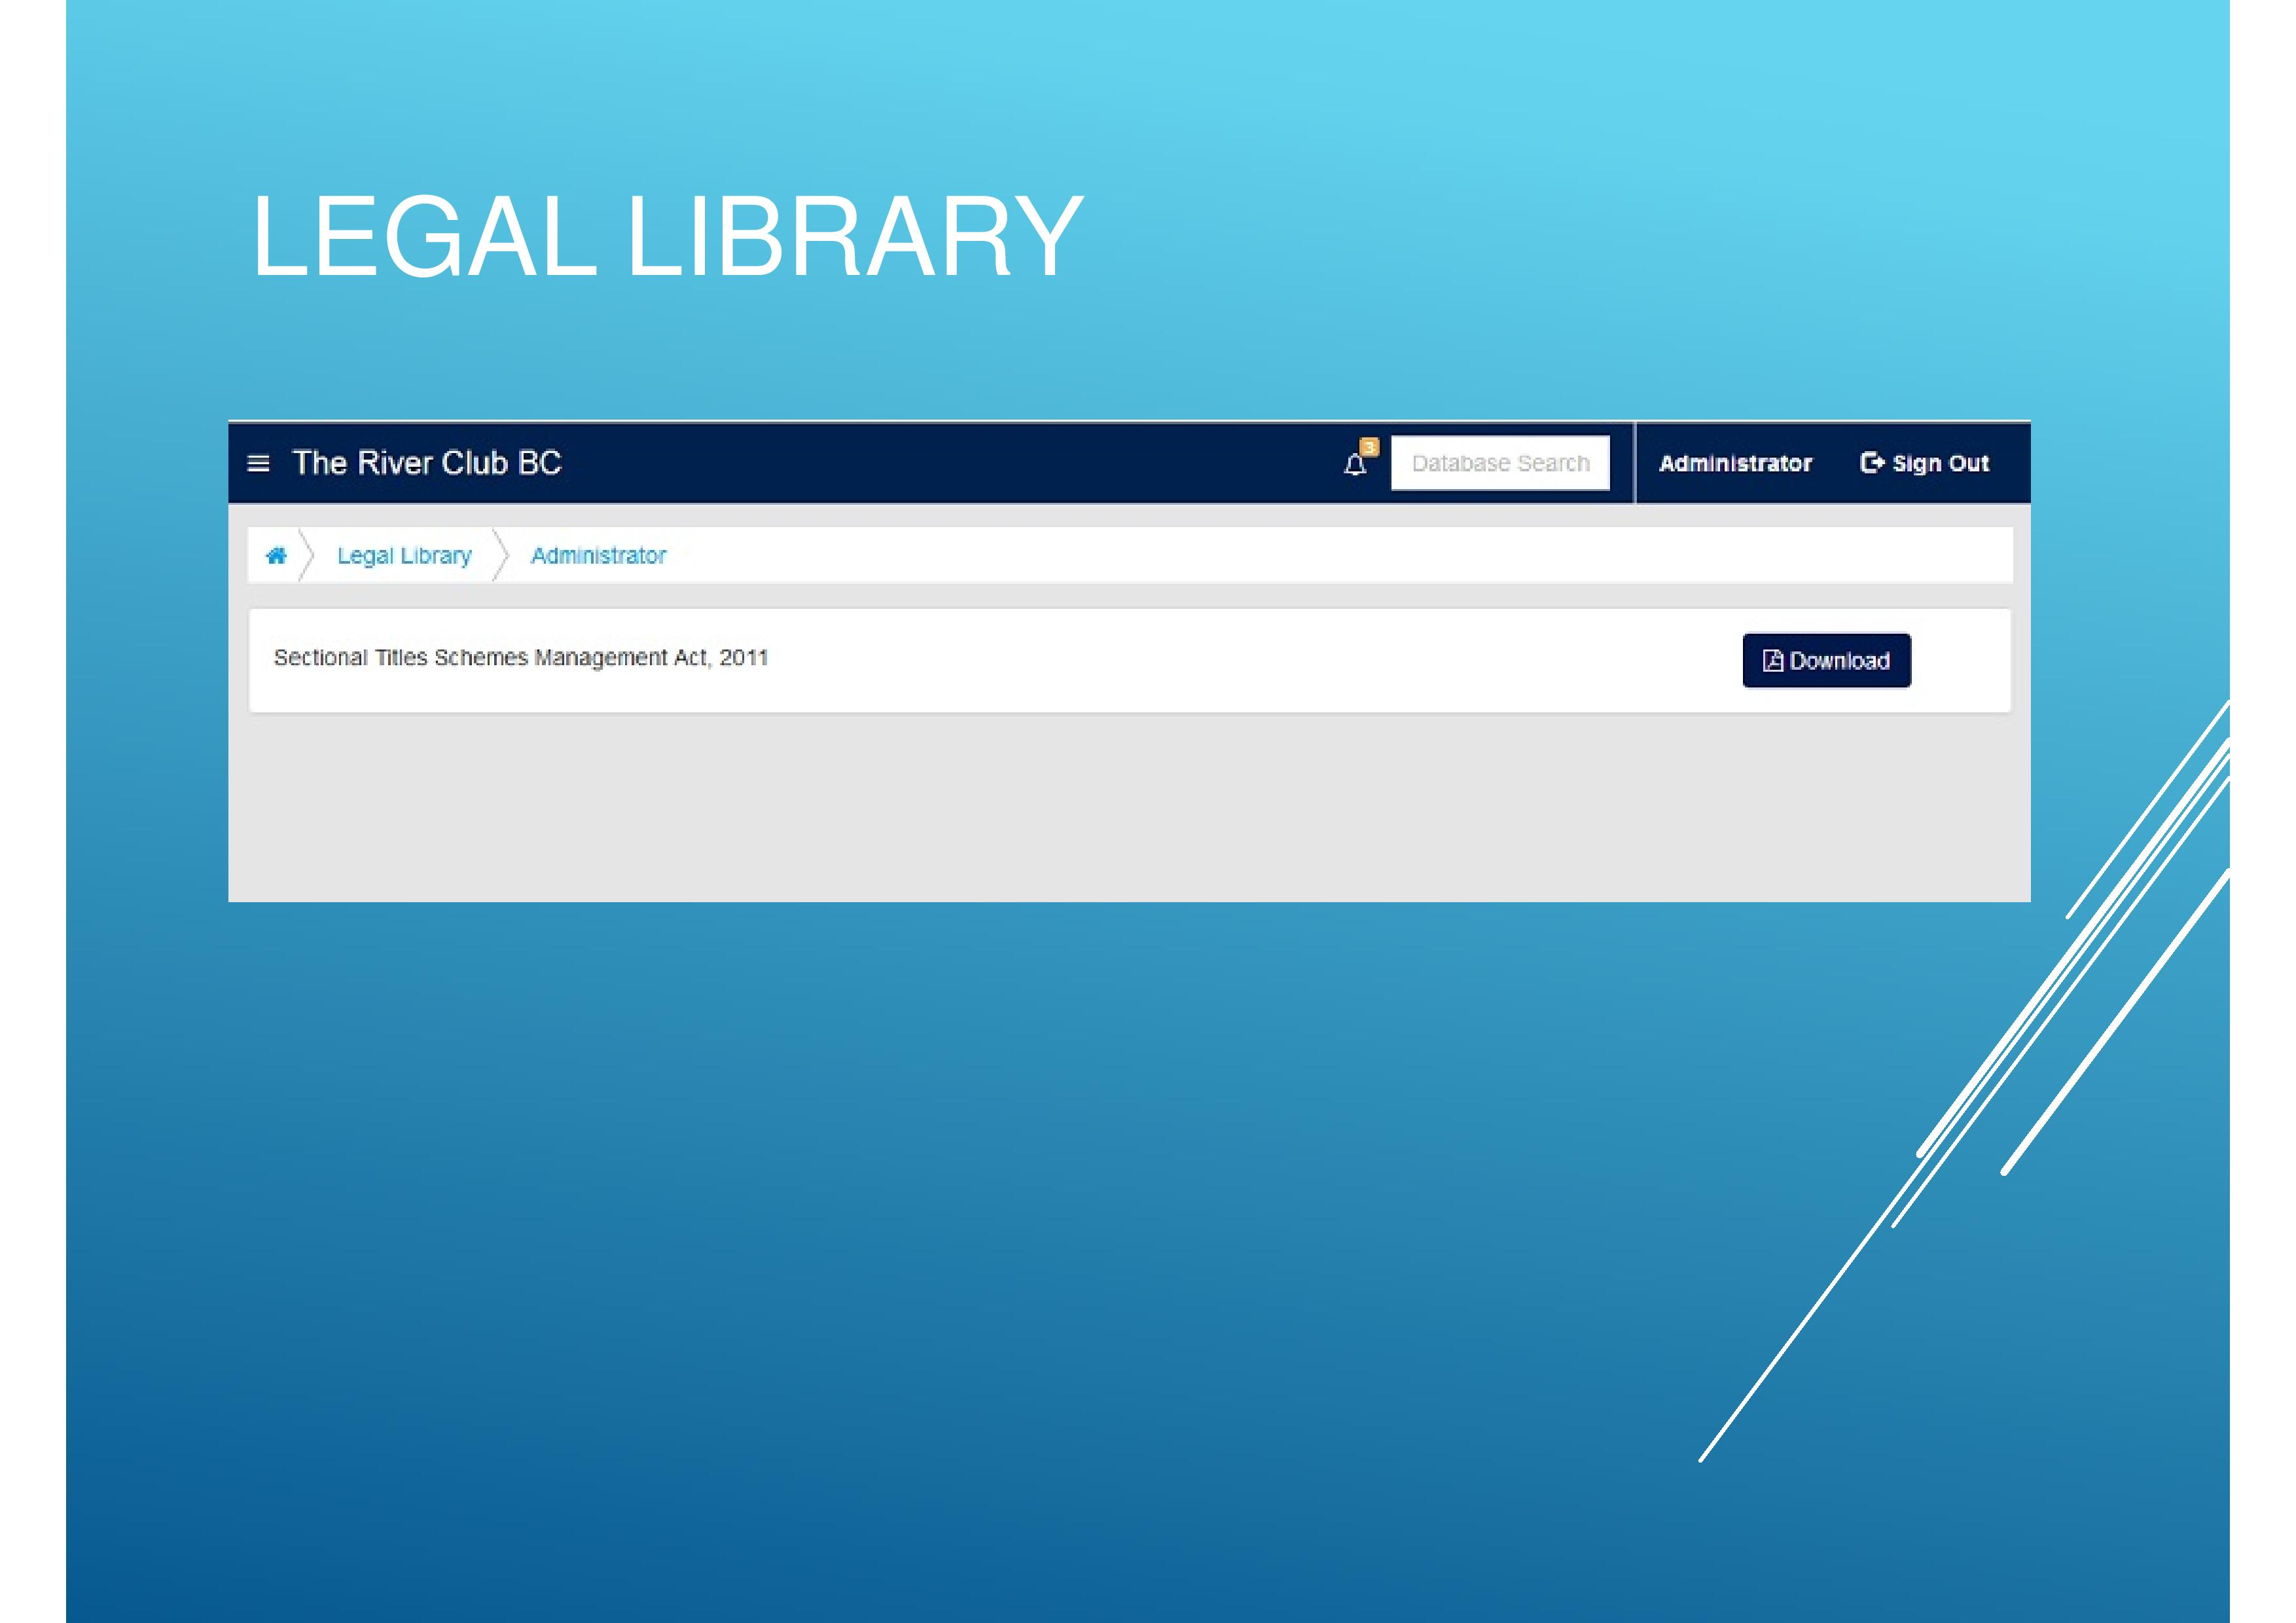 The Legal library contains important sectional title legal documents